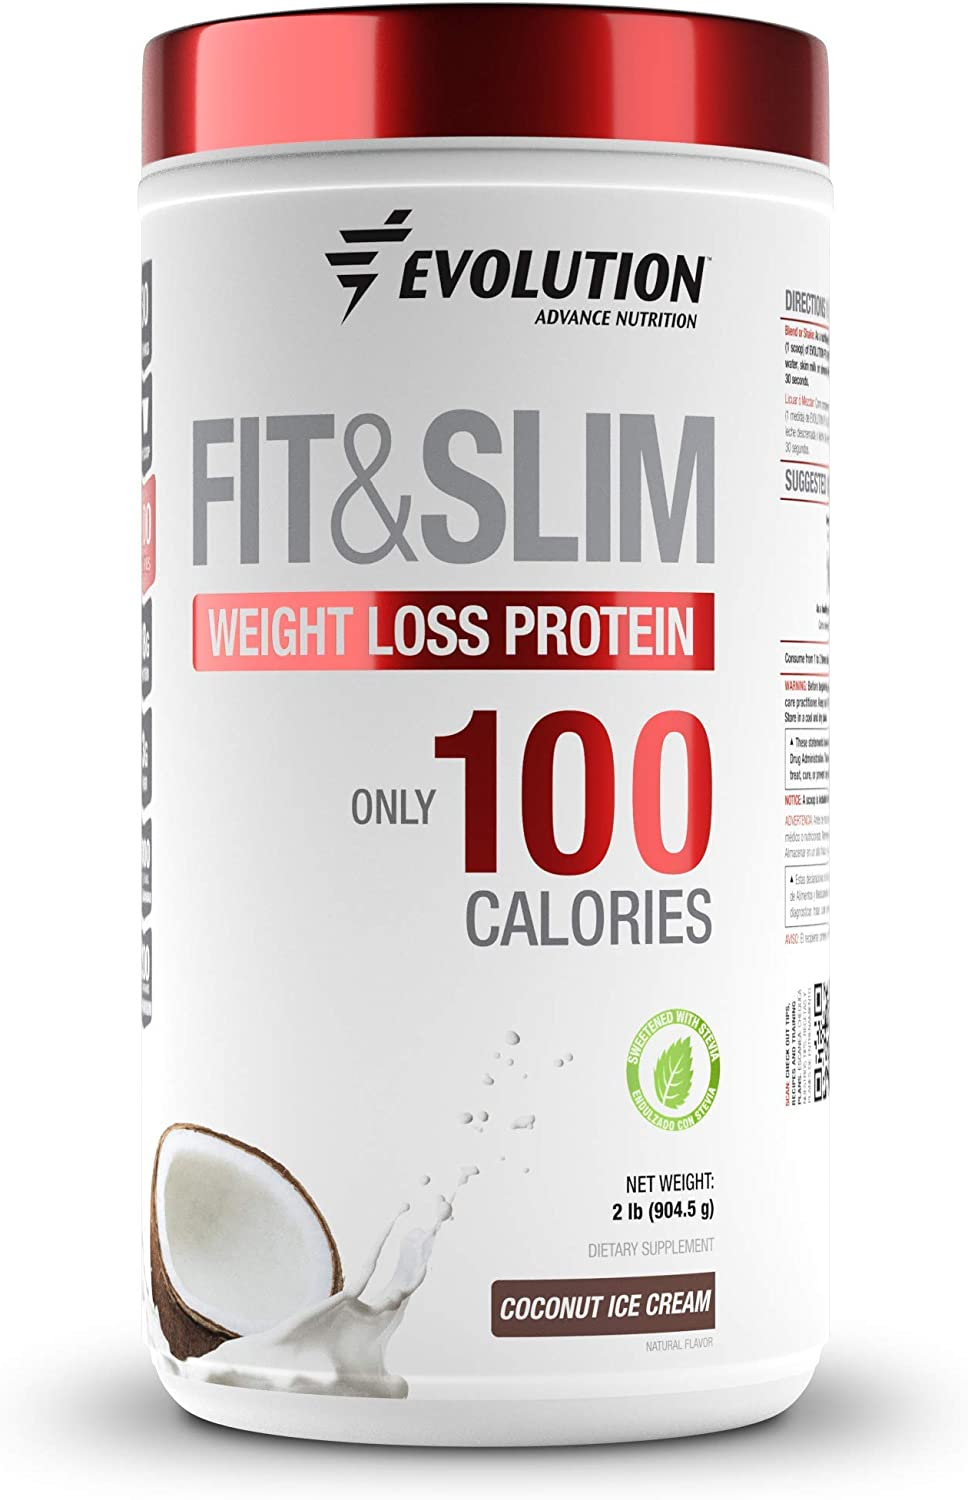 Evolution Advance Nutrition Fit & Slim Blend - Grass Fed Whey Protein with Glucomannan, Inulin Fiber, High Protein, High Fiber, Pure, Keto Approved, Non GMO, Stevia Sweetened – 2 Pounds (Coconut)